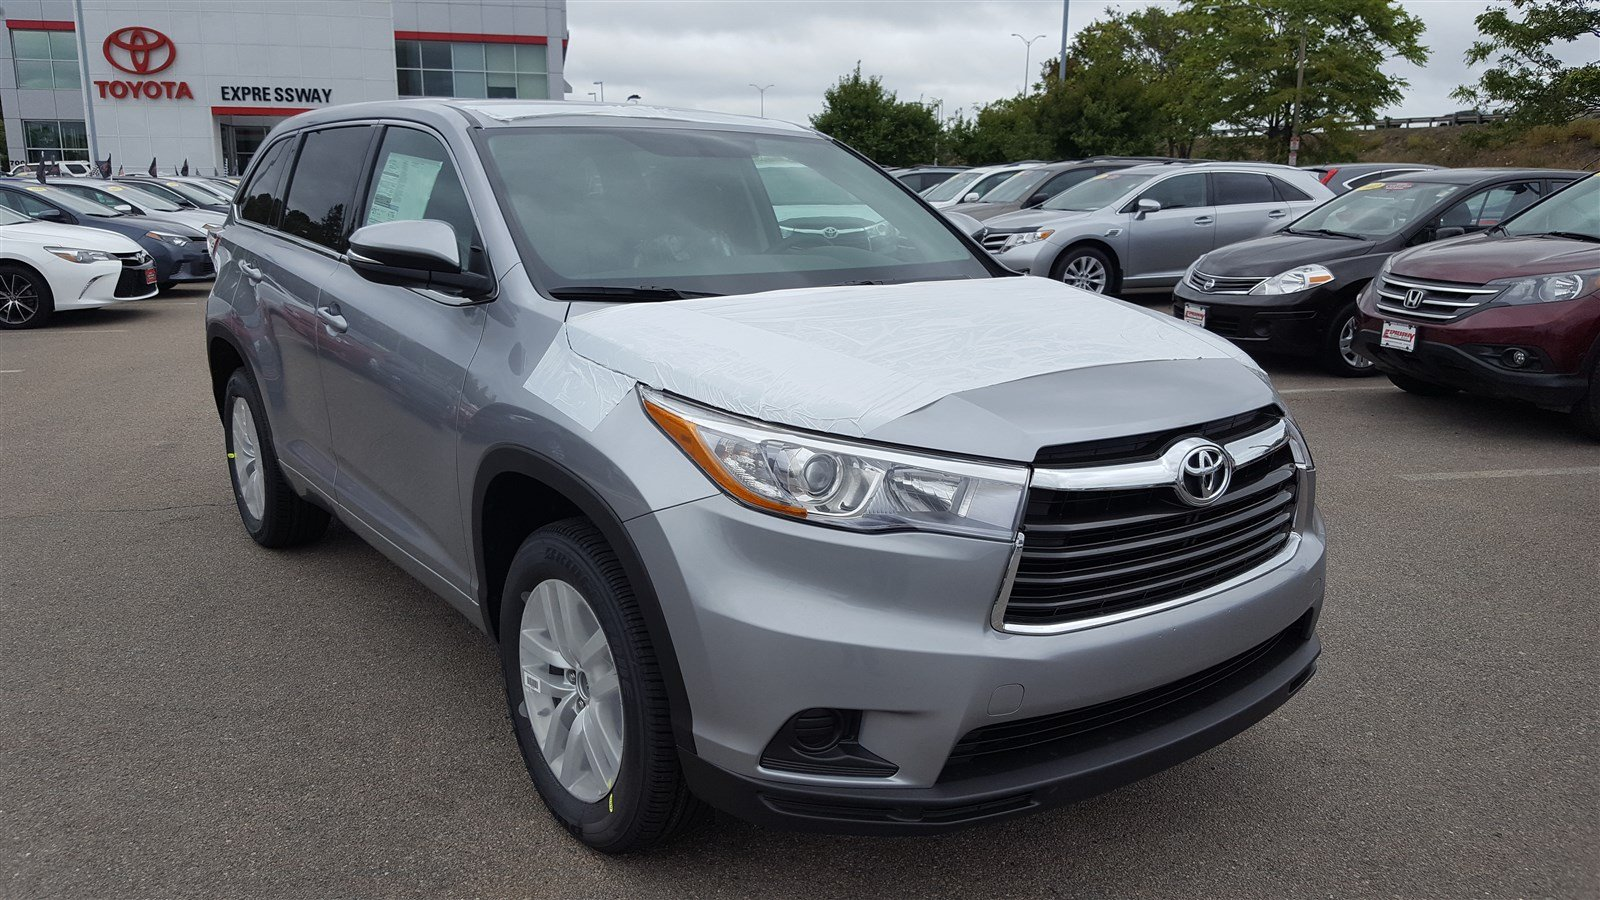 new 2016 toyota highlander le sport utility in boston 16909 expressway toyota. Black Bedroom Furniture Sets. Home Design Ideas